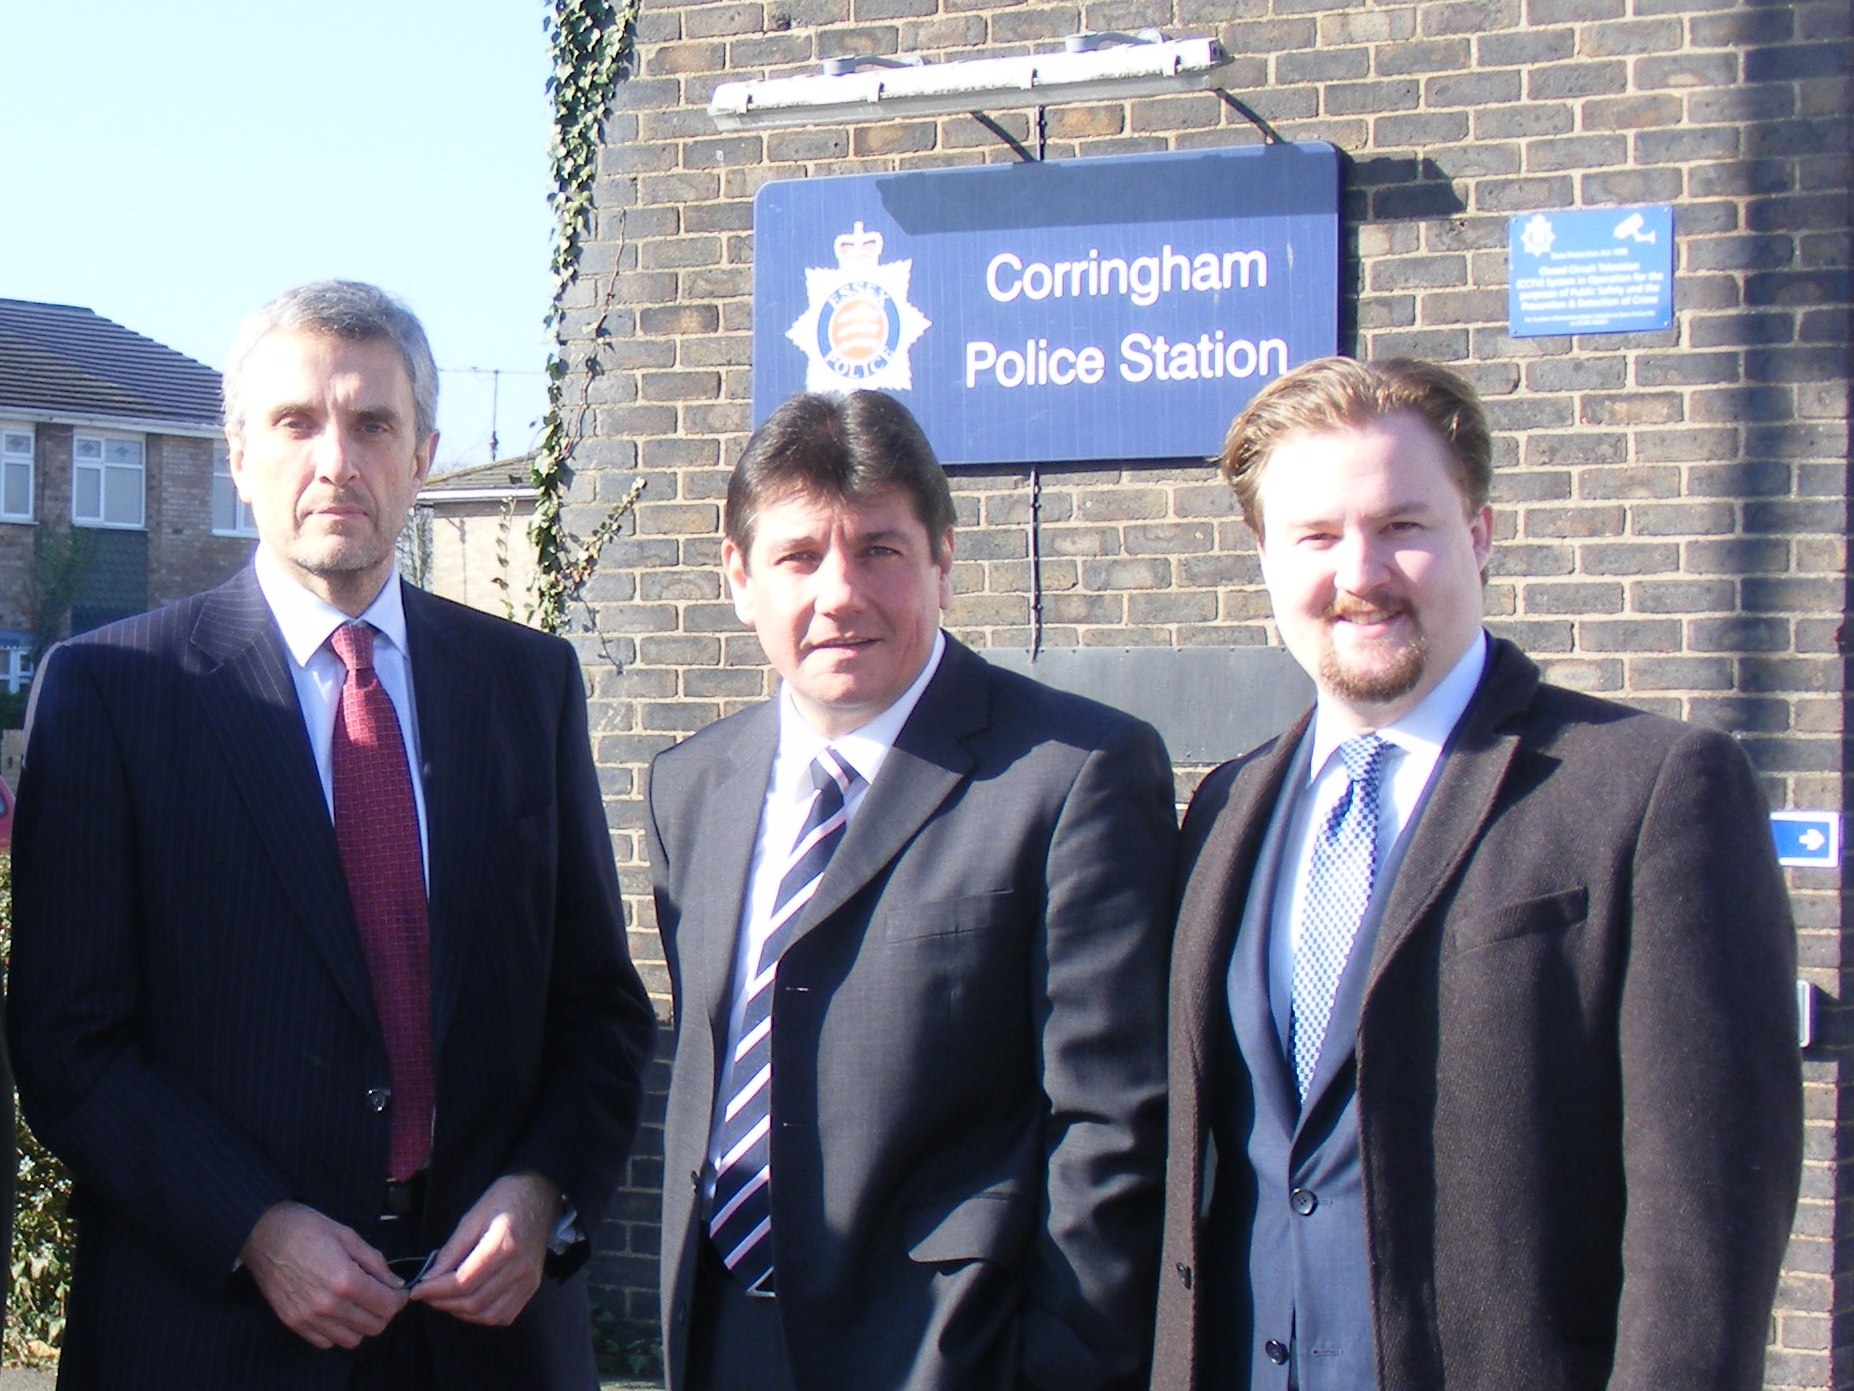 Police and Crime Commissioner Nick Alston outside Corringham police station with East Thurrock MP Stephen Metcalfe and Cllr James Halden